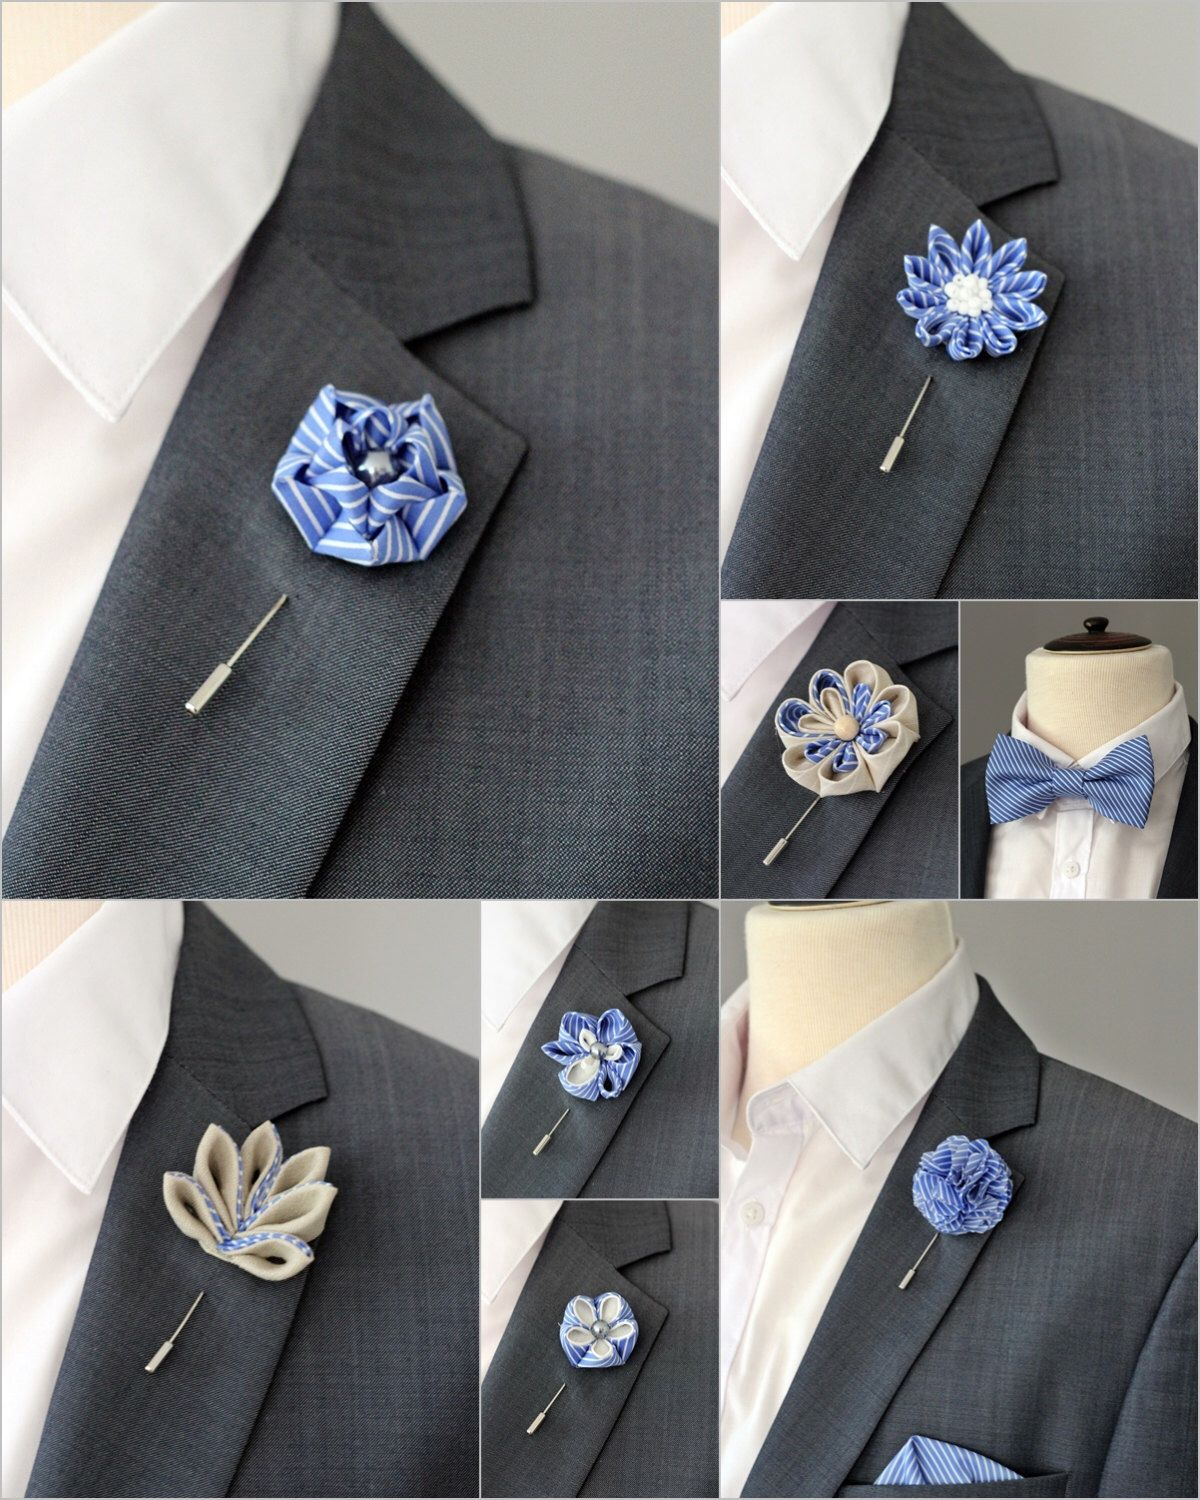 72d3b1eb110 1 flower lapel pin, Mens lapel flower Boutonniere, dusty rose wedding lapel  pin mens gift, pocket square,pink bow tie,blush hot pink